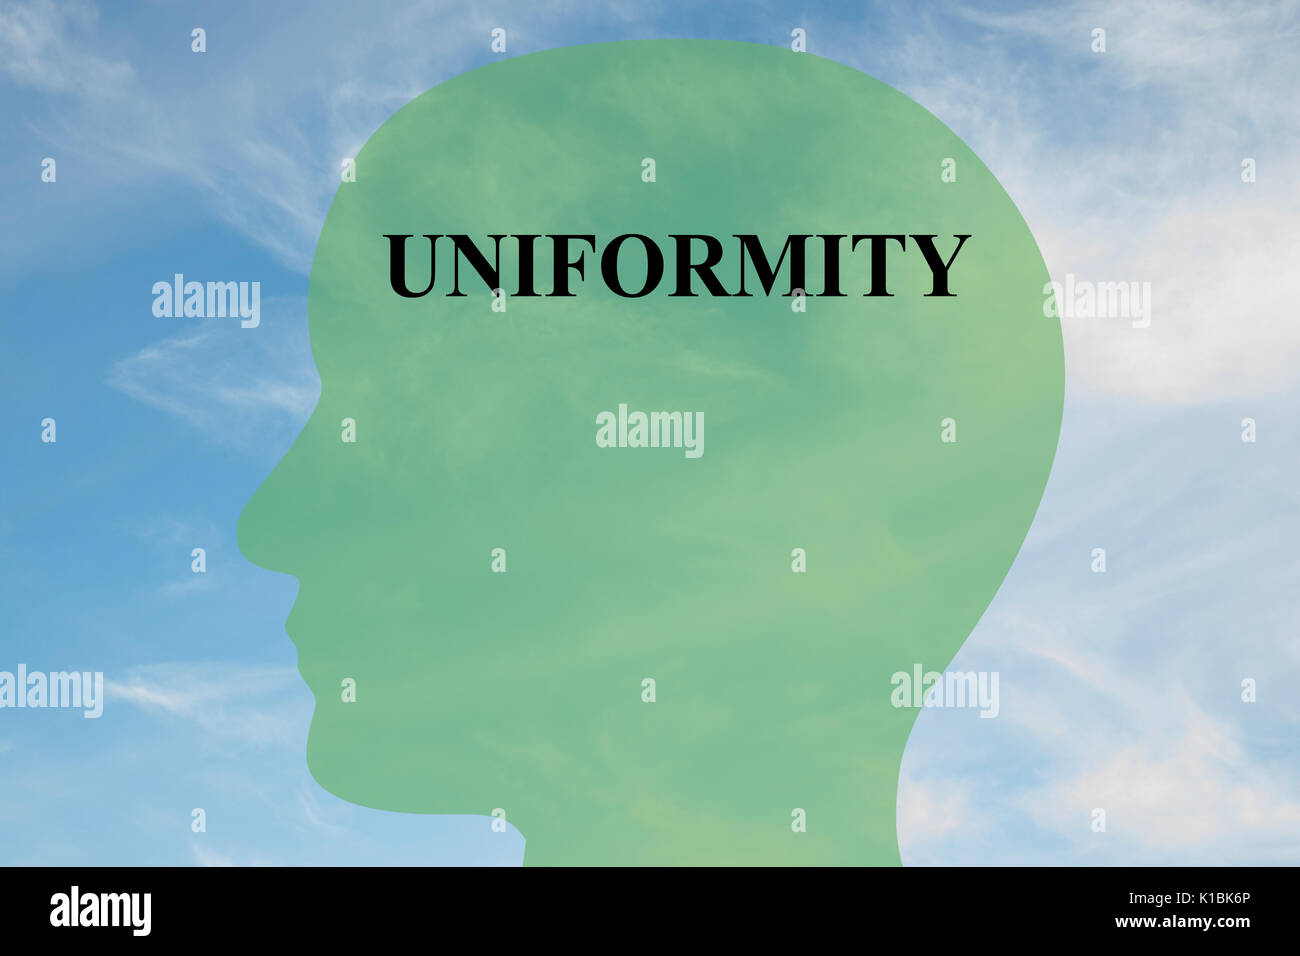 Render illustration of UNIFORMITY title on head silhouette, with cloudy sky as a background. Human mentality concept. - Stock Image